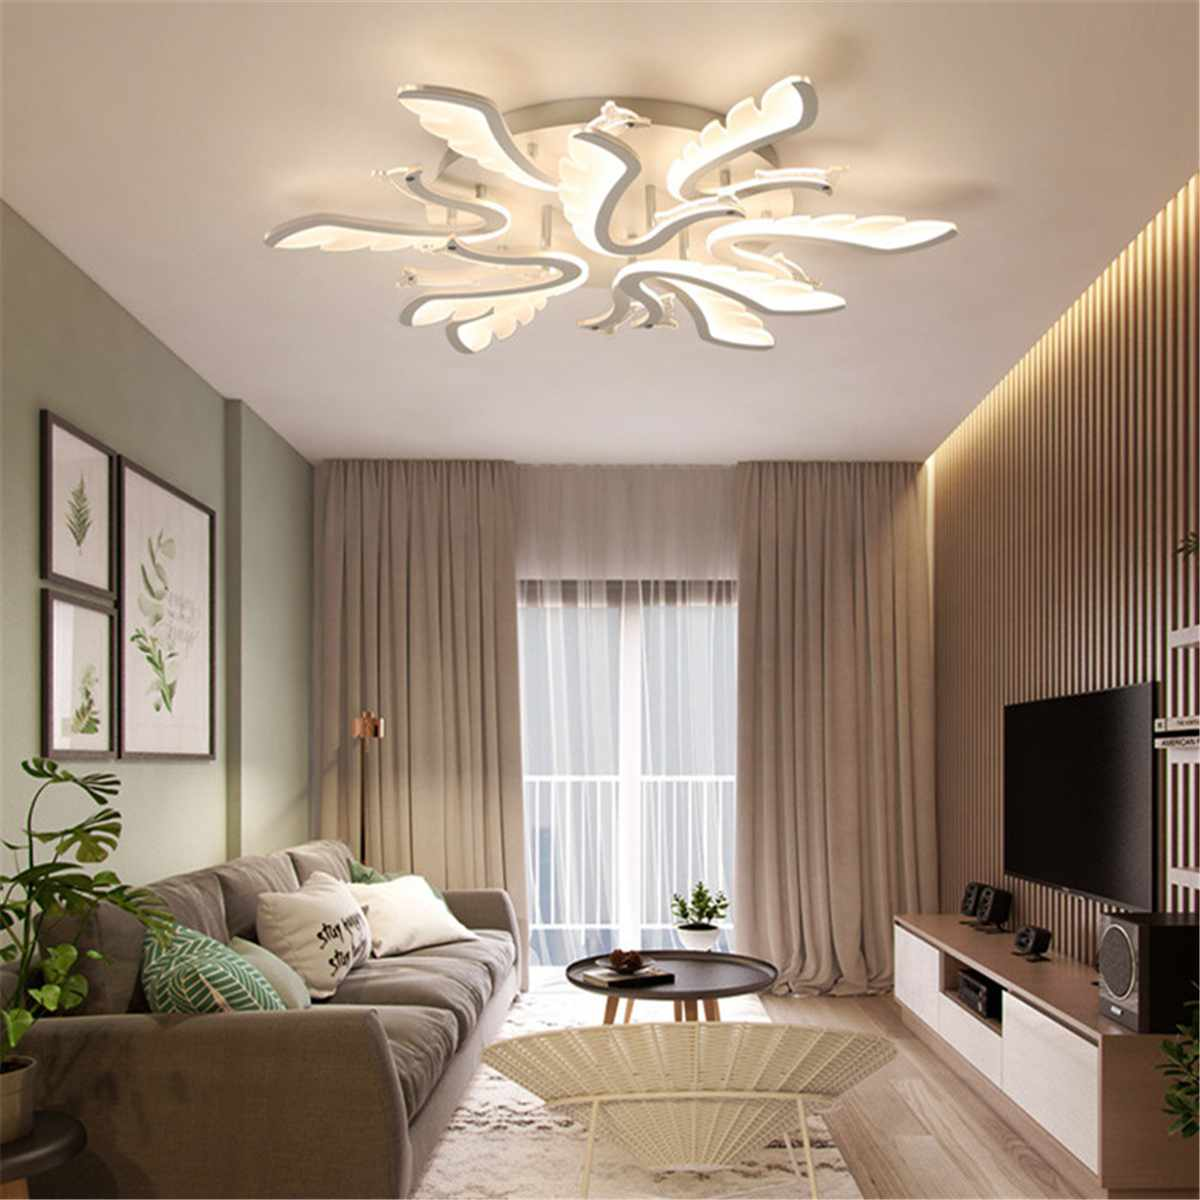 Modern Acrylic Ceiling Light For Living Room Warm Lamp Fixture Nordic Minimalist Design Indoor Lighting Home Decor Led Lamps